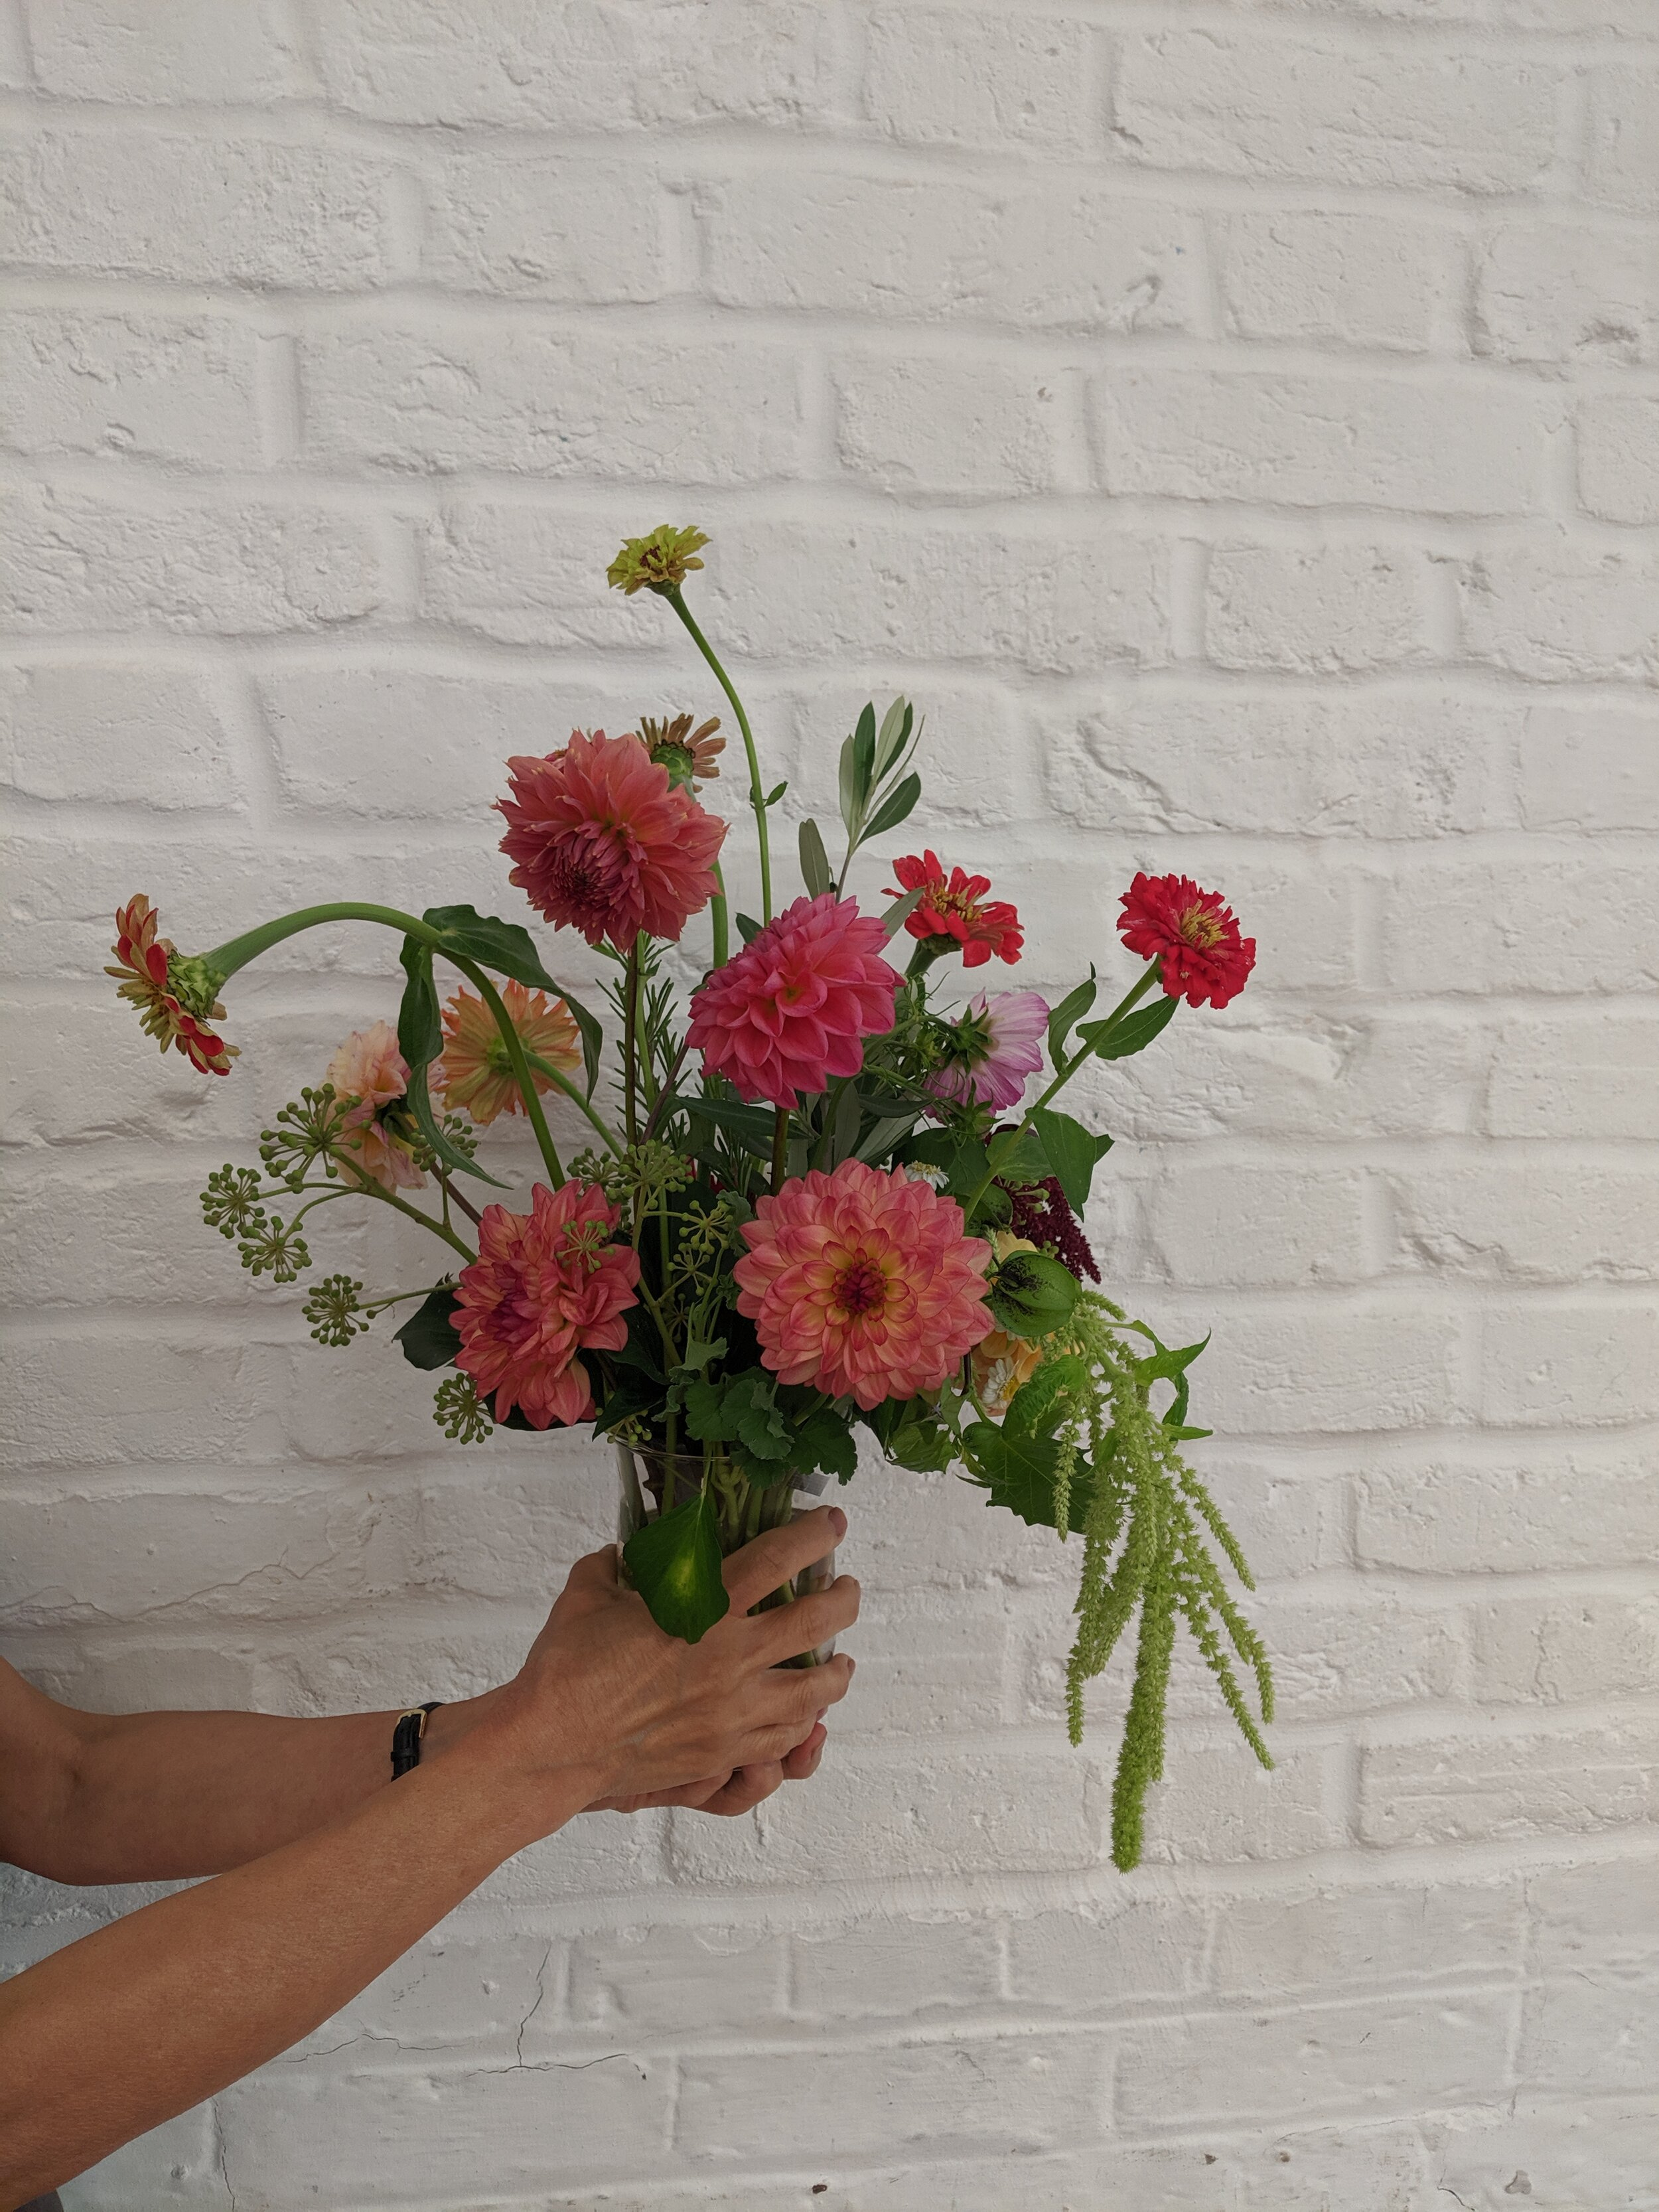 A stunning simple arrangement made by one of the ladies on our inaugural floristry workshop for survivors